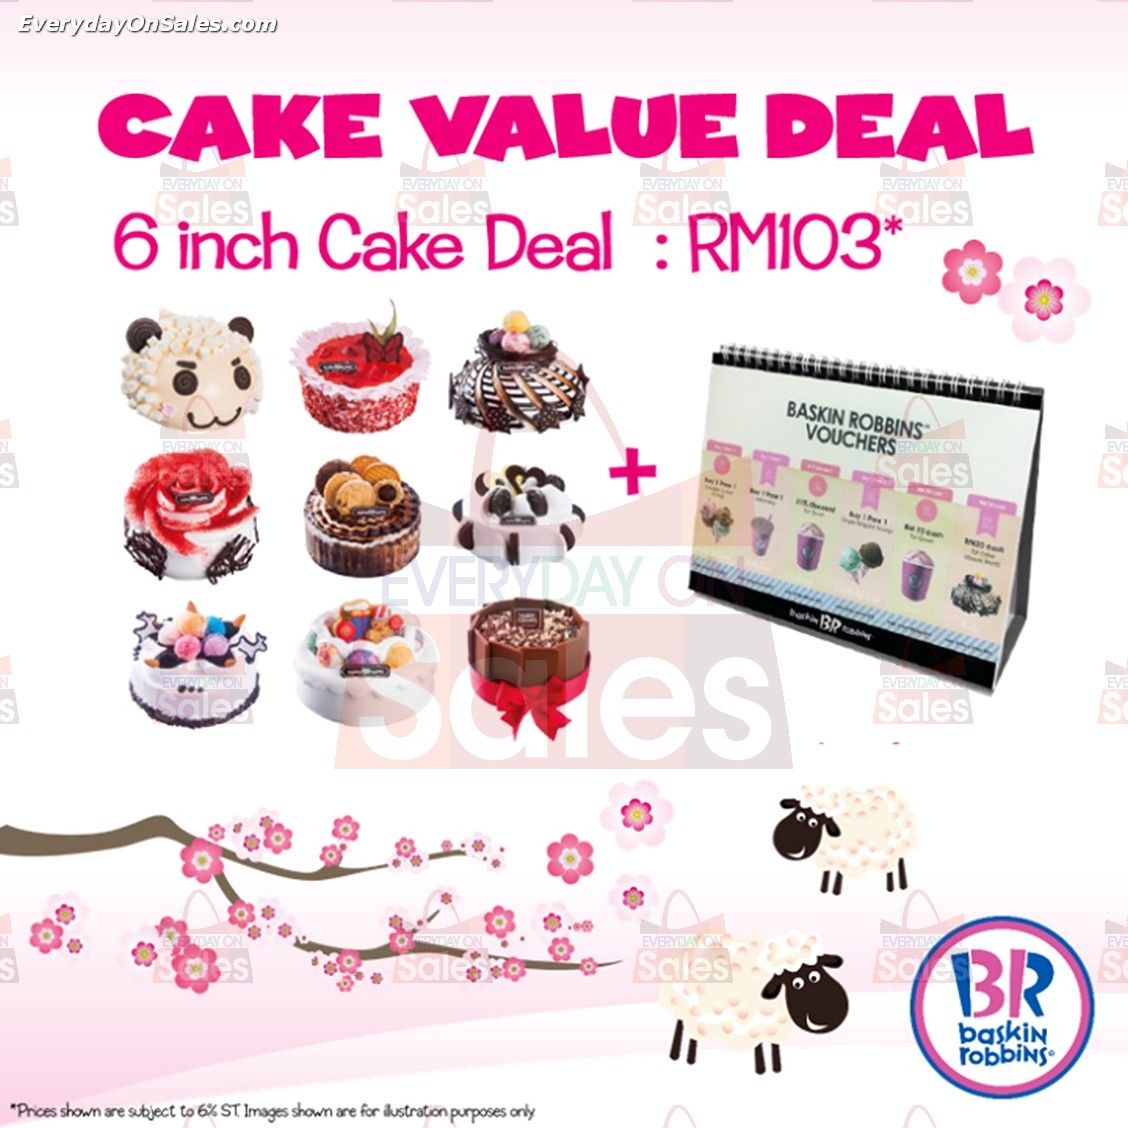 9 Feb 2015 Onward Baskin Robbins Cake Value Deal Promotion